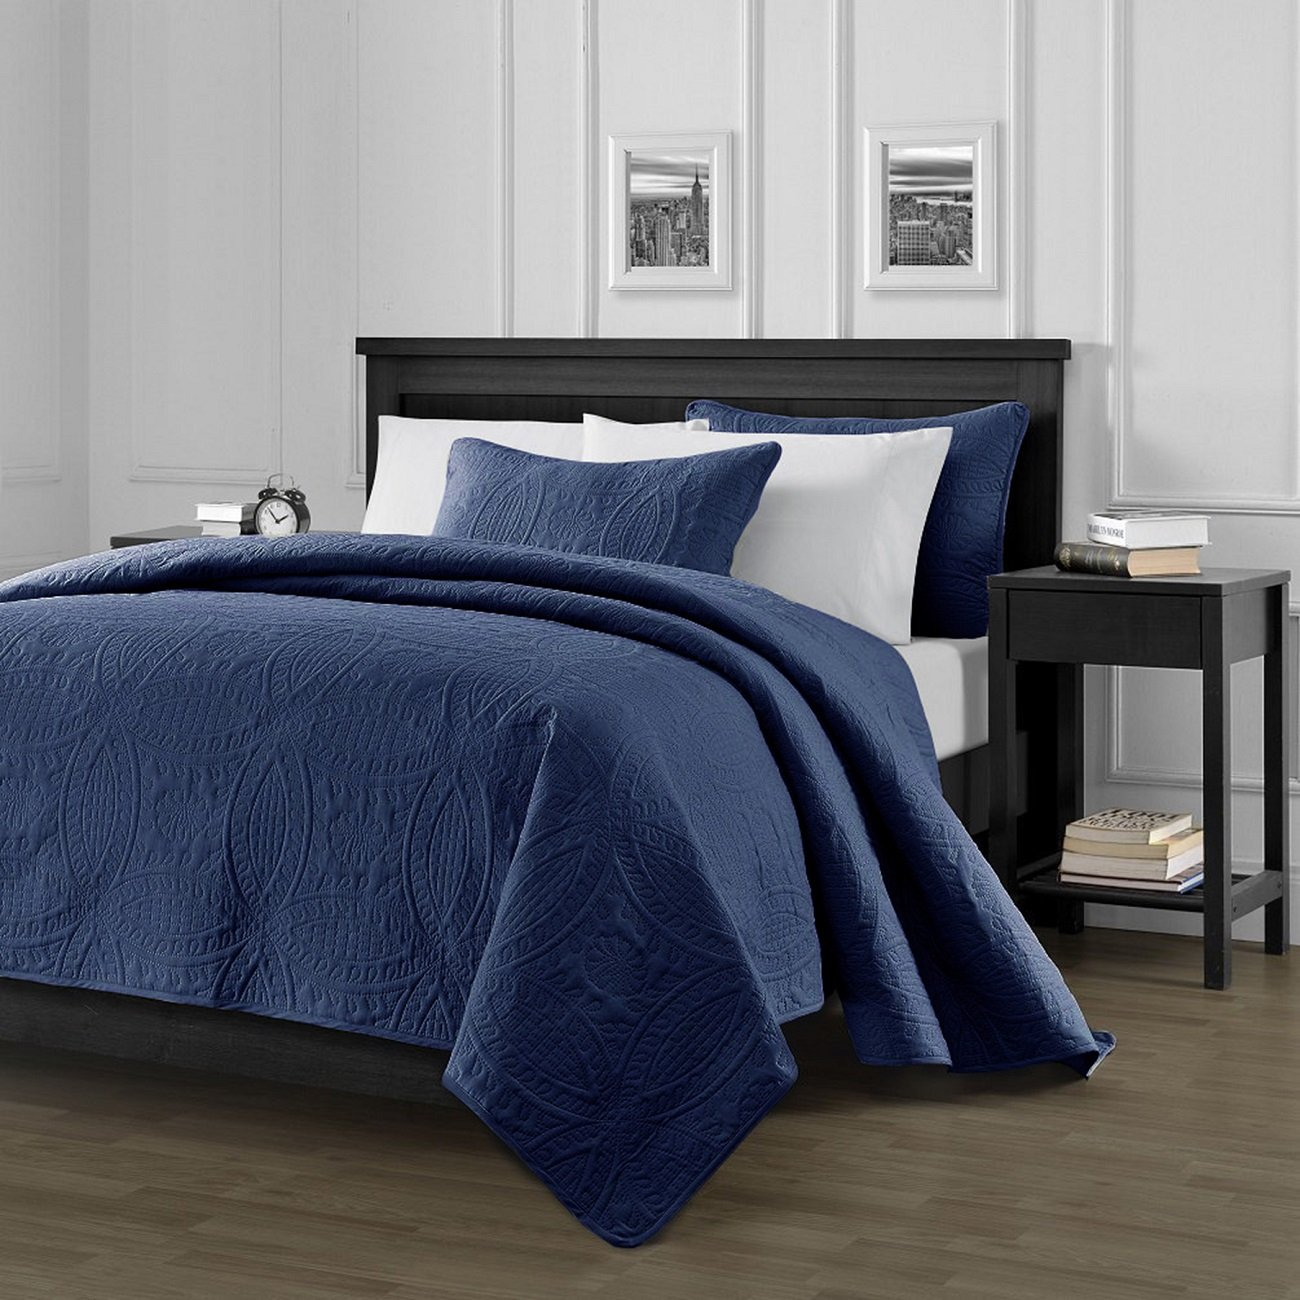 Contemporary King Bedroom Sets Royal Blue And Navy Bedding Sets Ease Bedding With Style